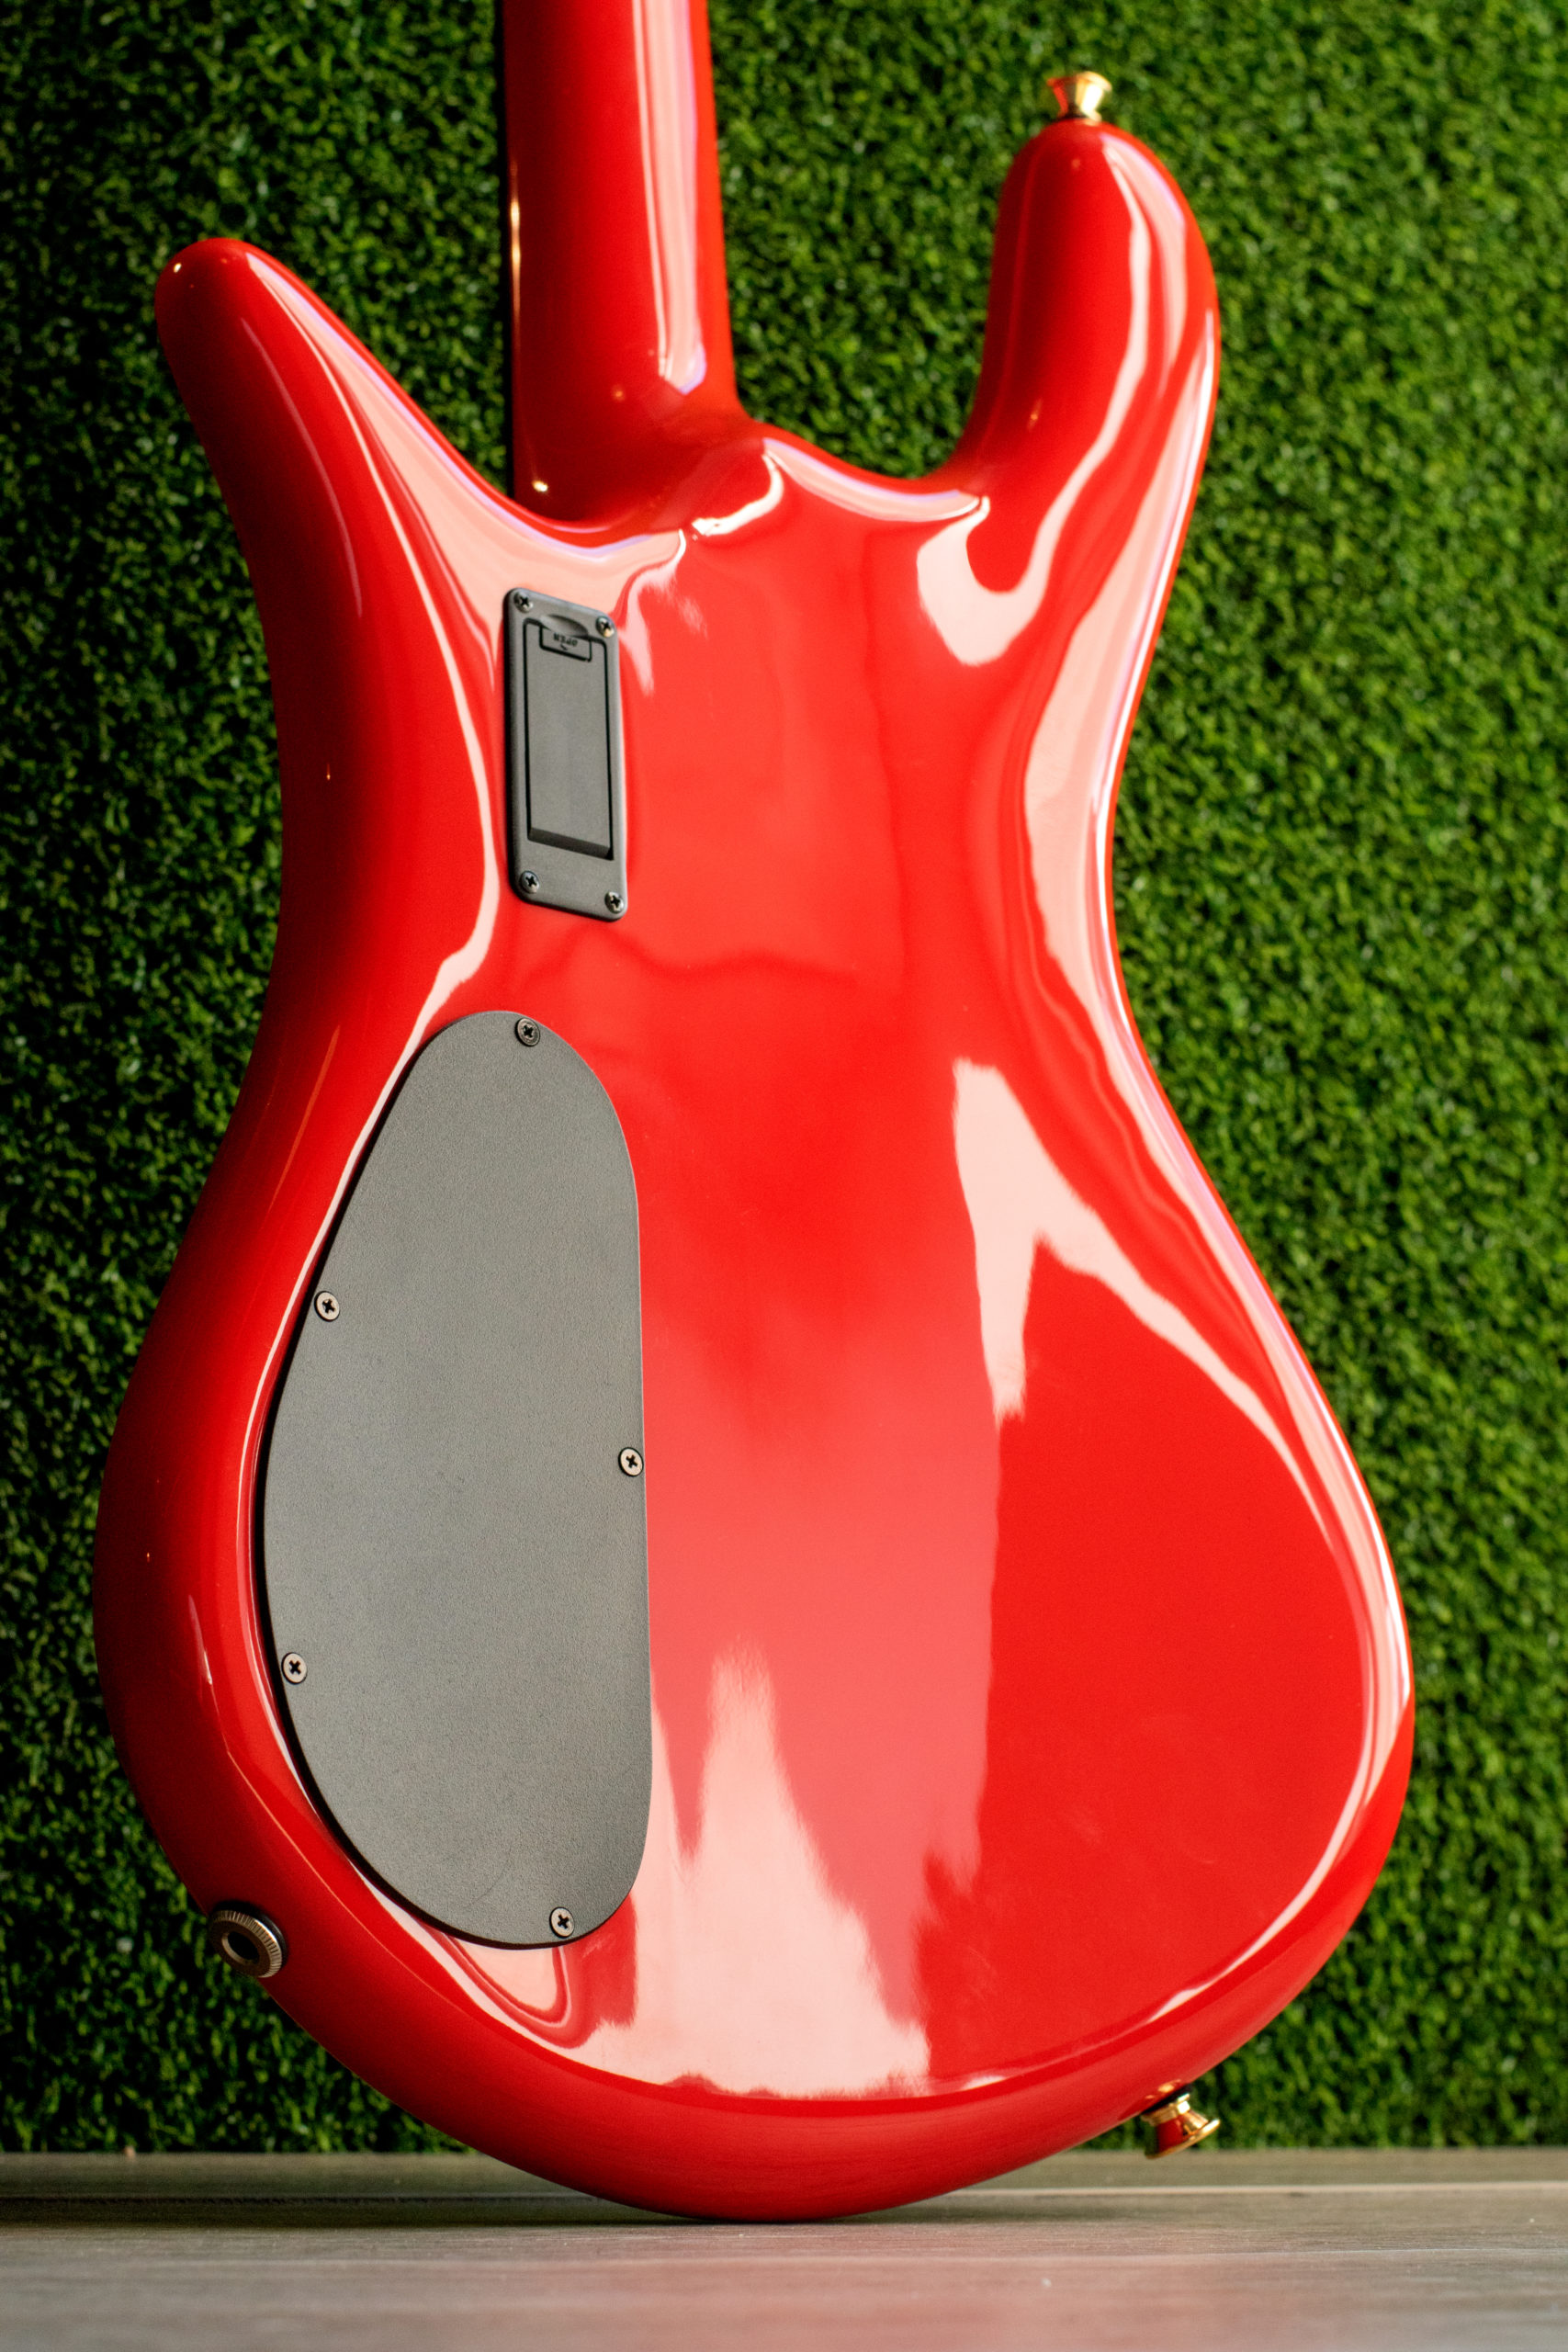 back of red Spector bass